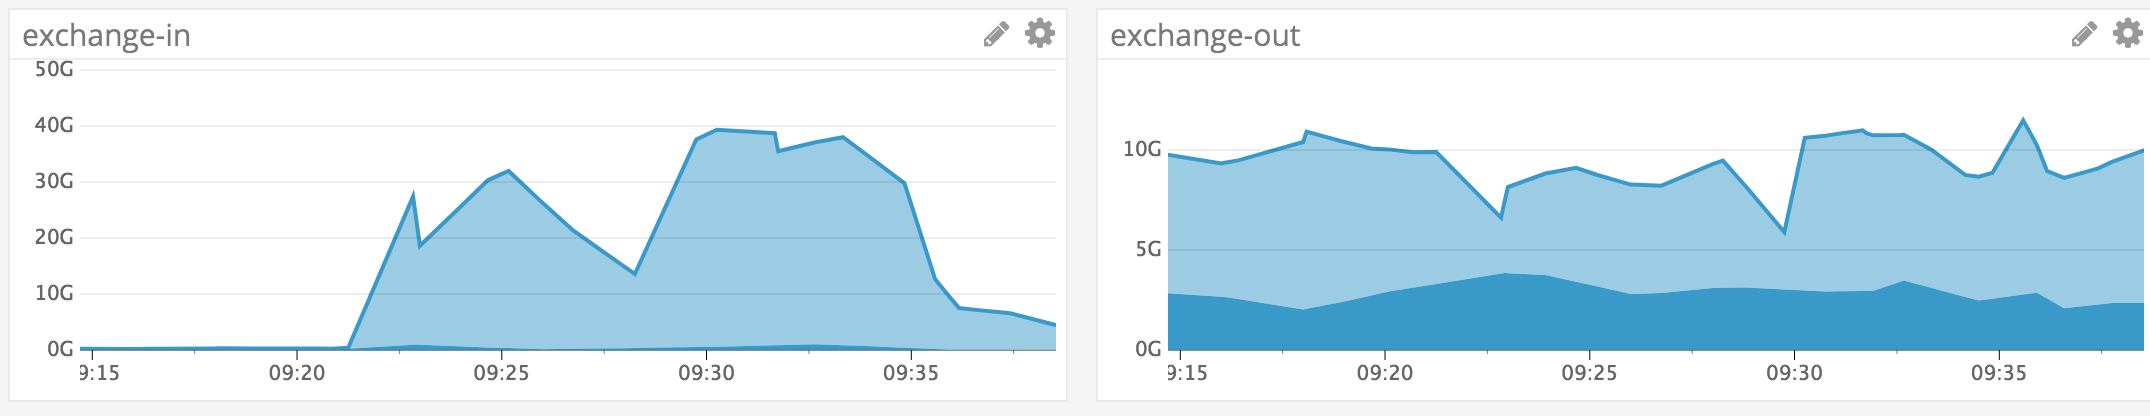 graph showing traffic movement off exchanges